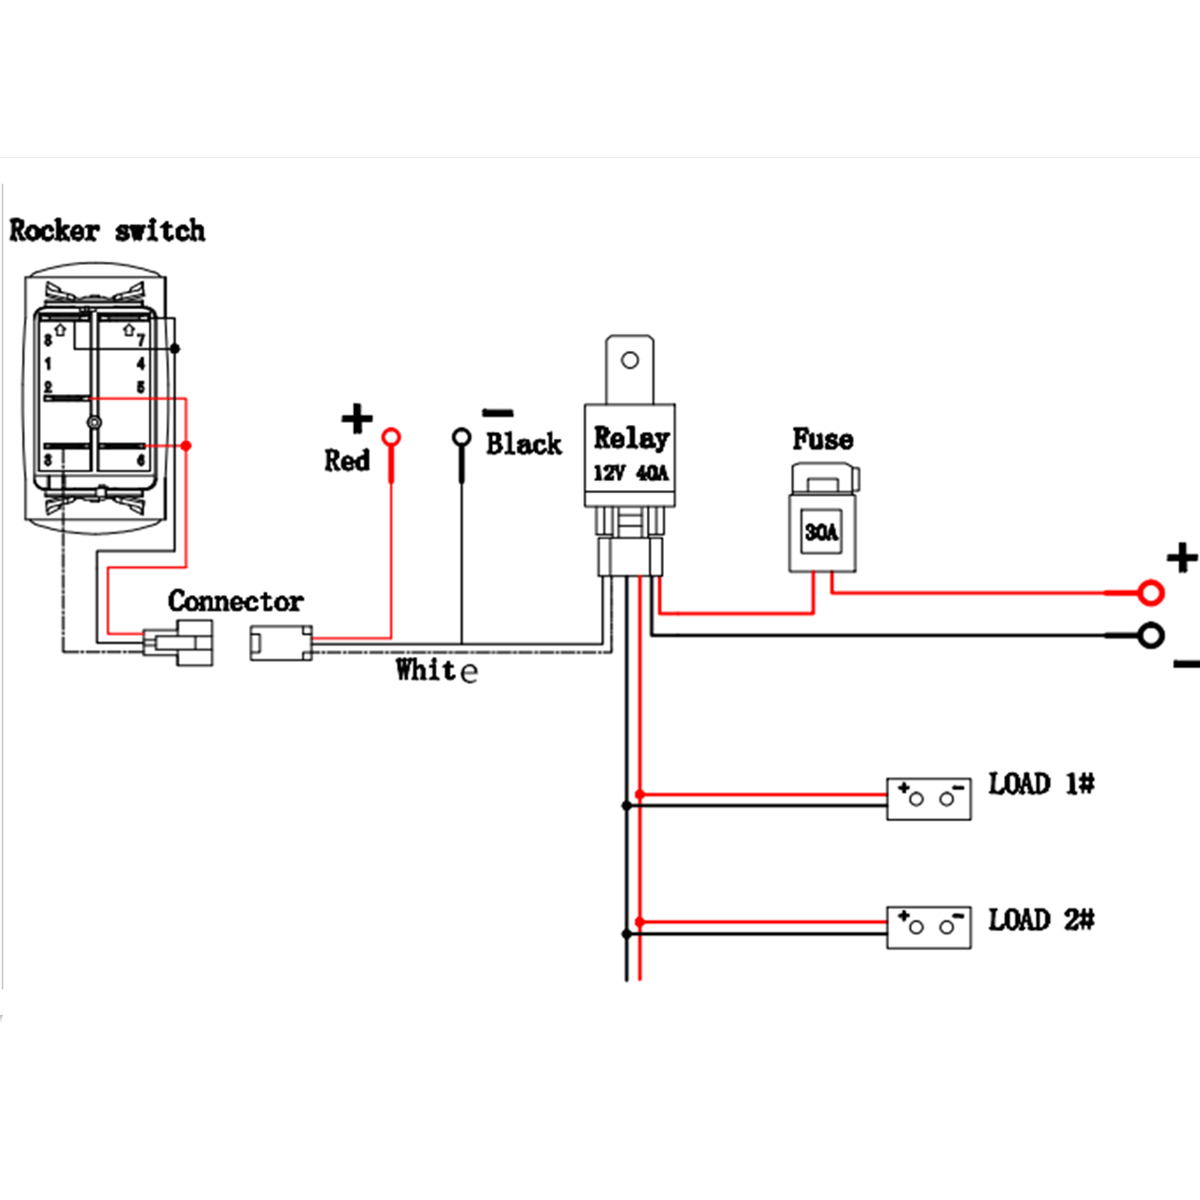 Dorman 8 Pin Rocker Switch 12 Volt Wiring Diagram